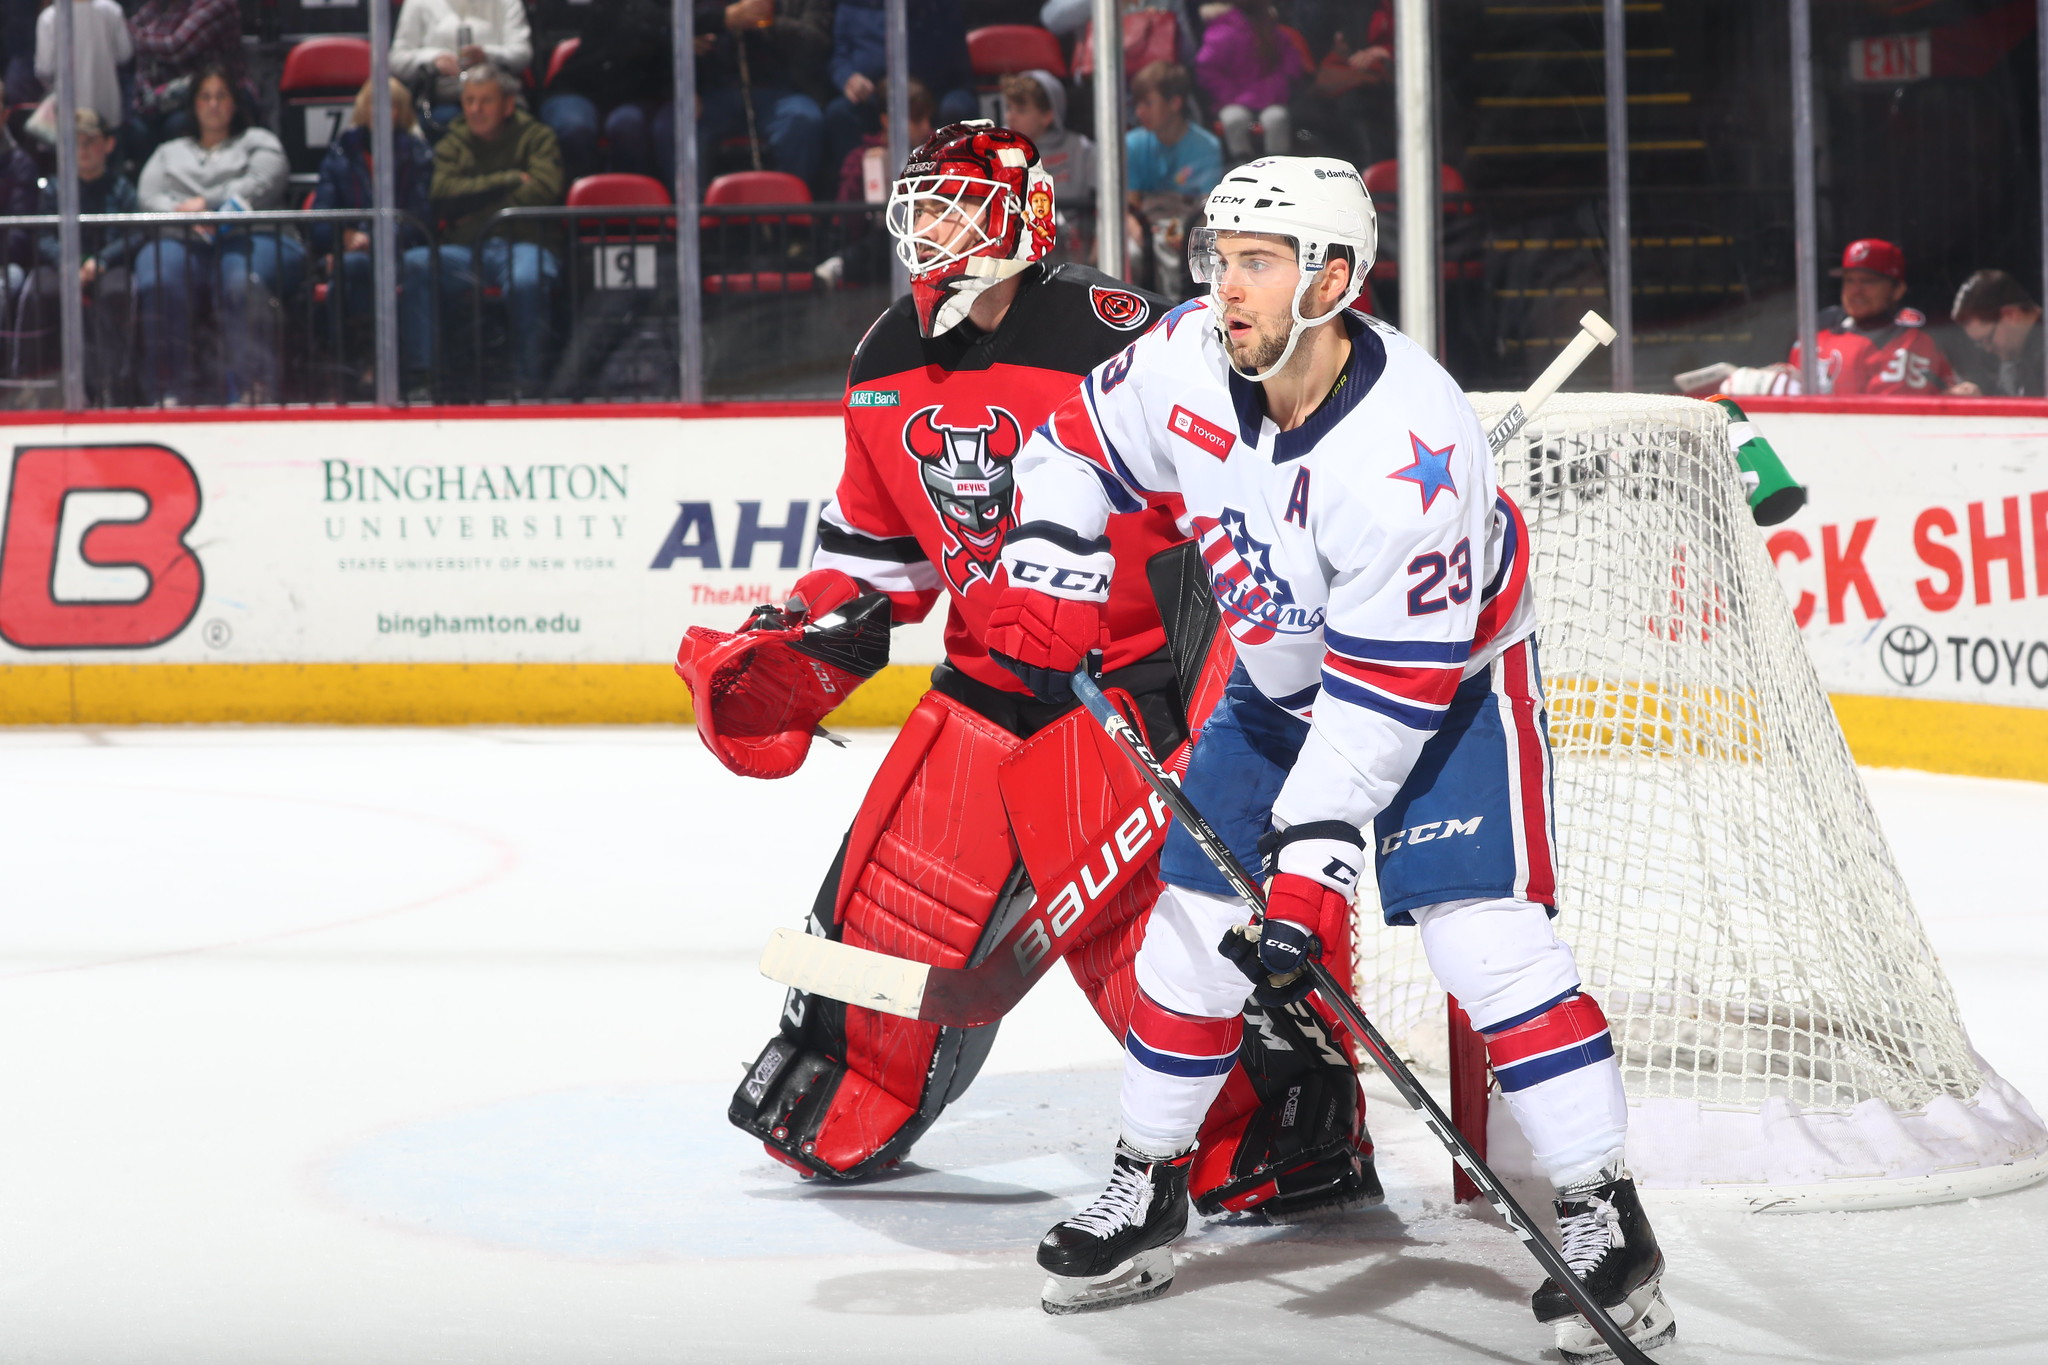 Recap: Amerks Shutout by Louise Domingue in Binghamton